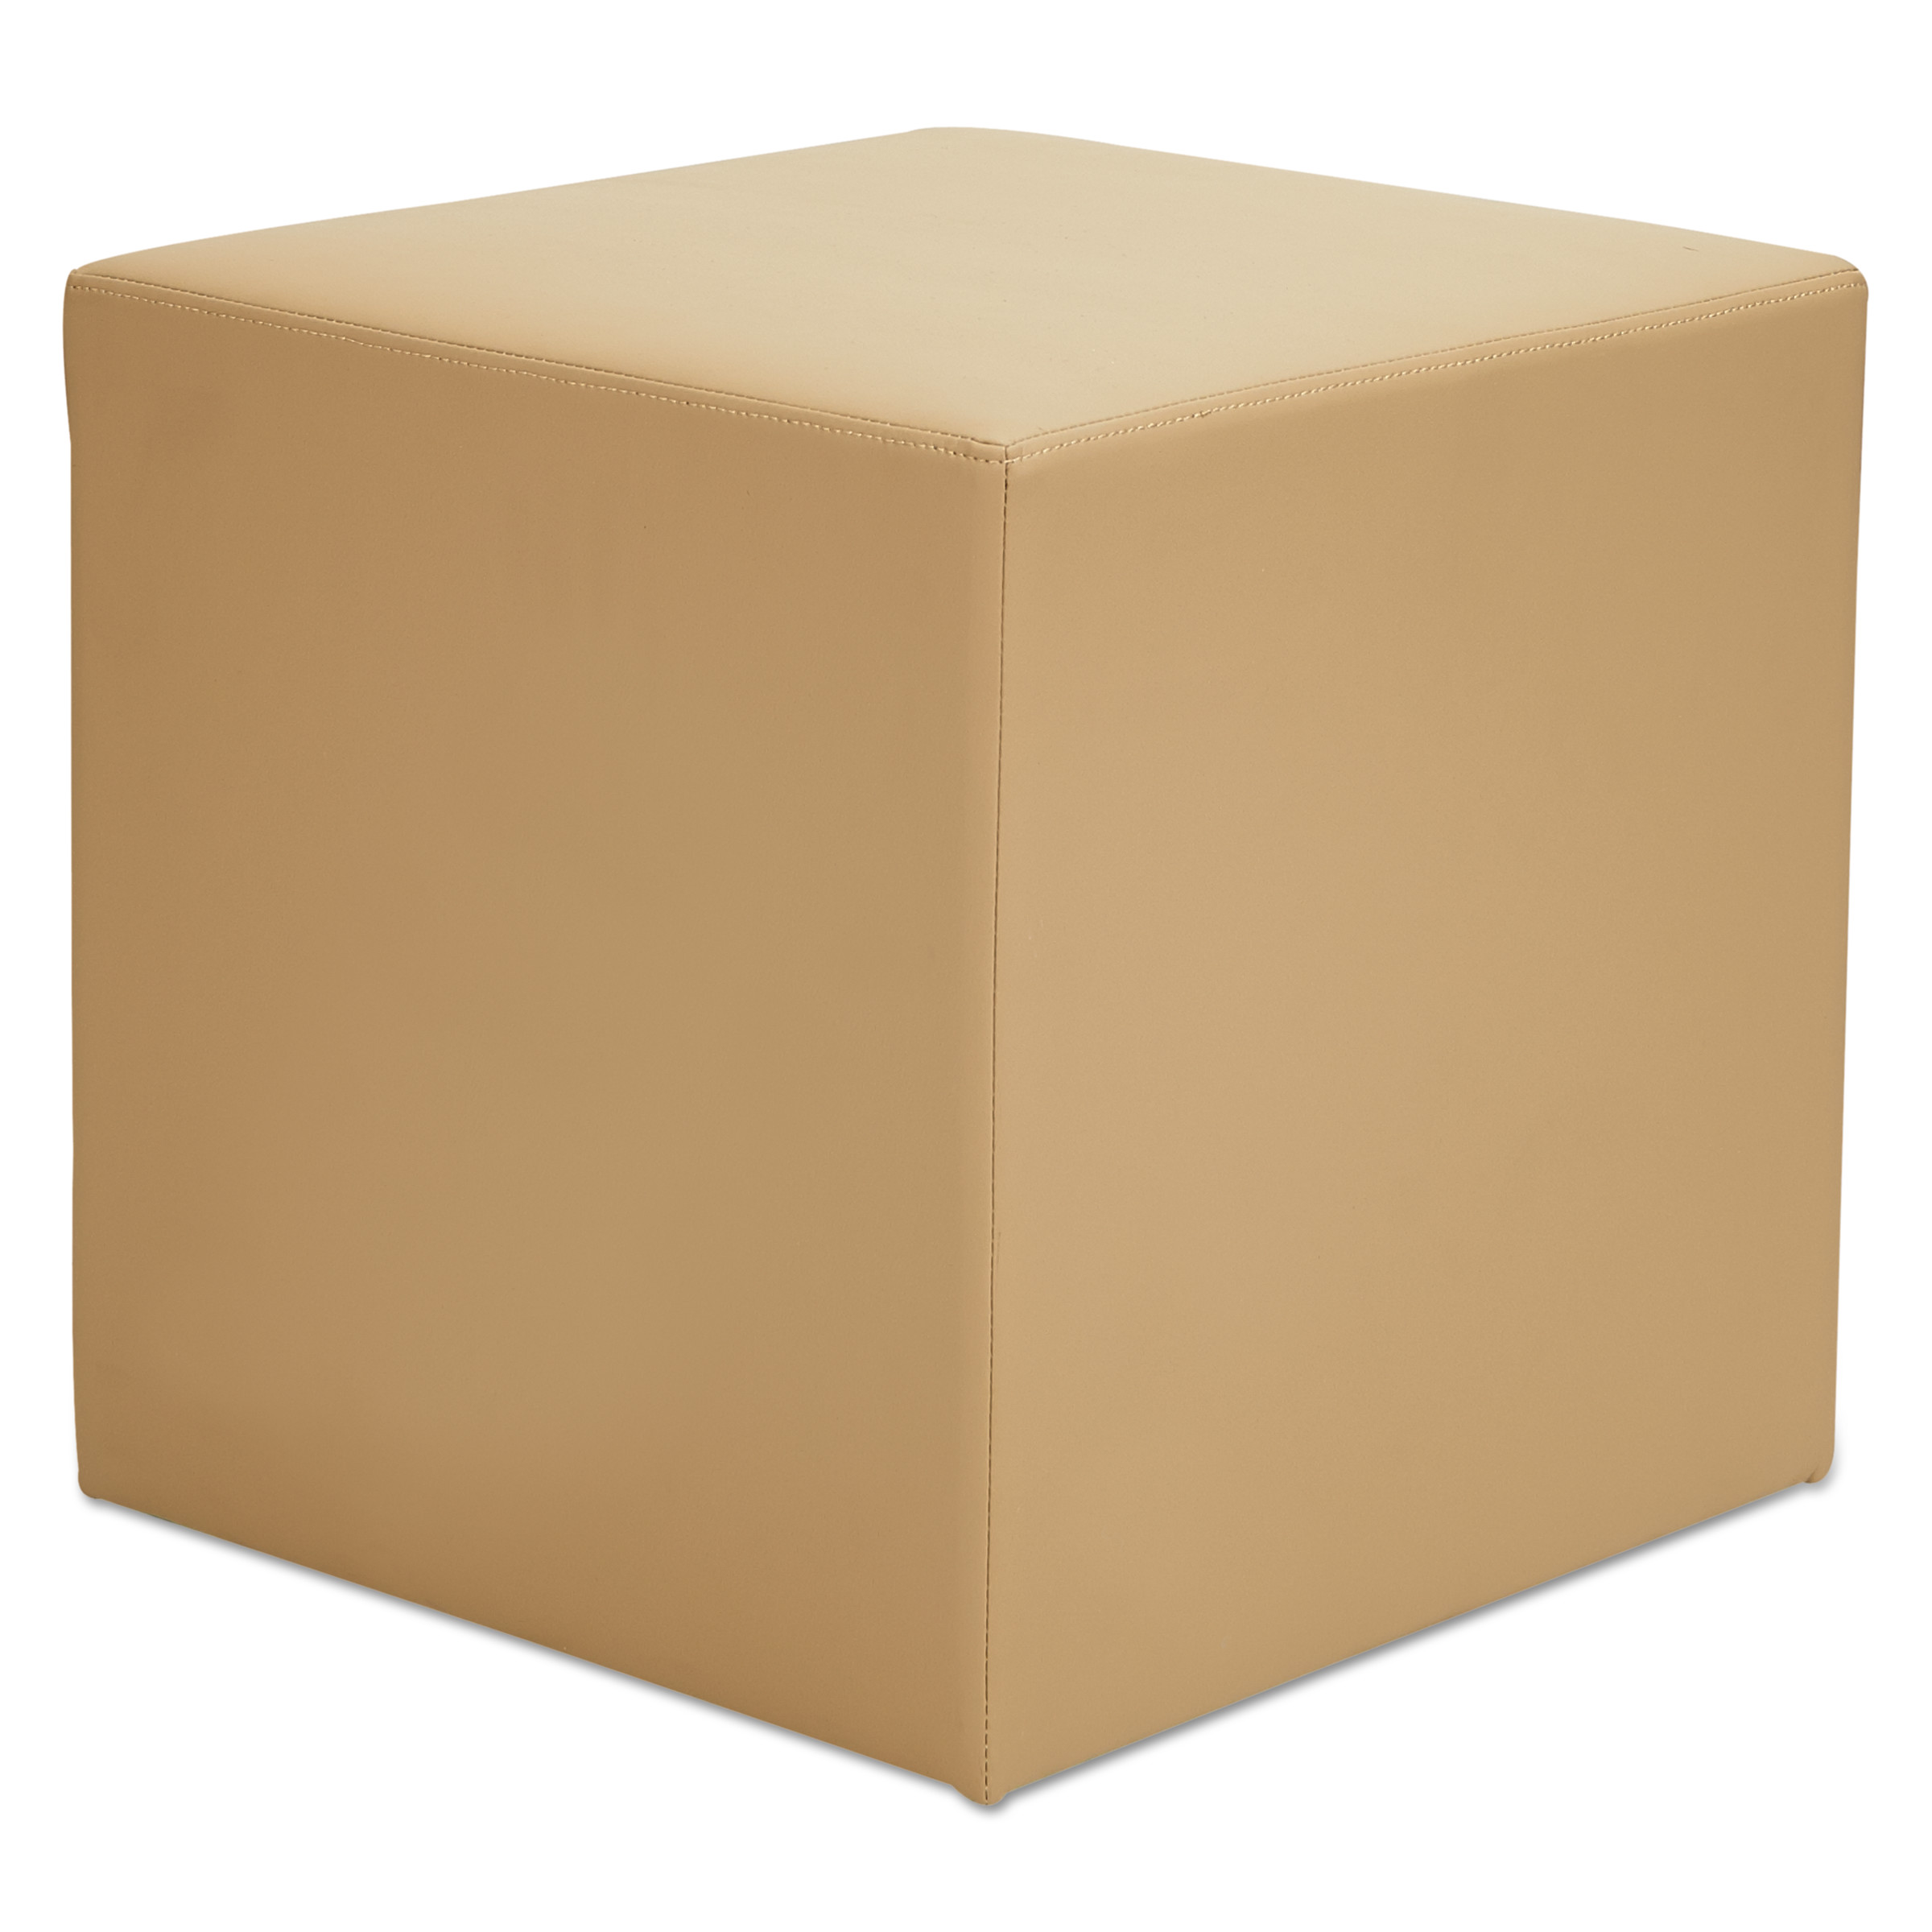 Alera WE Series Collaboration Seating, Cube Bench, 18 x 18 x 18, Beige